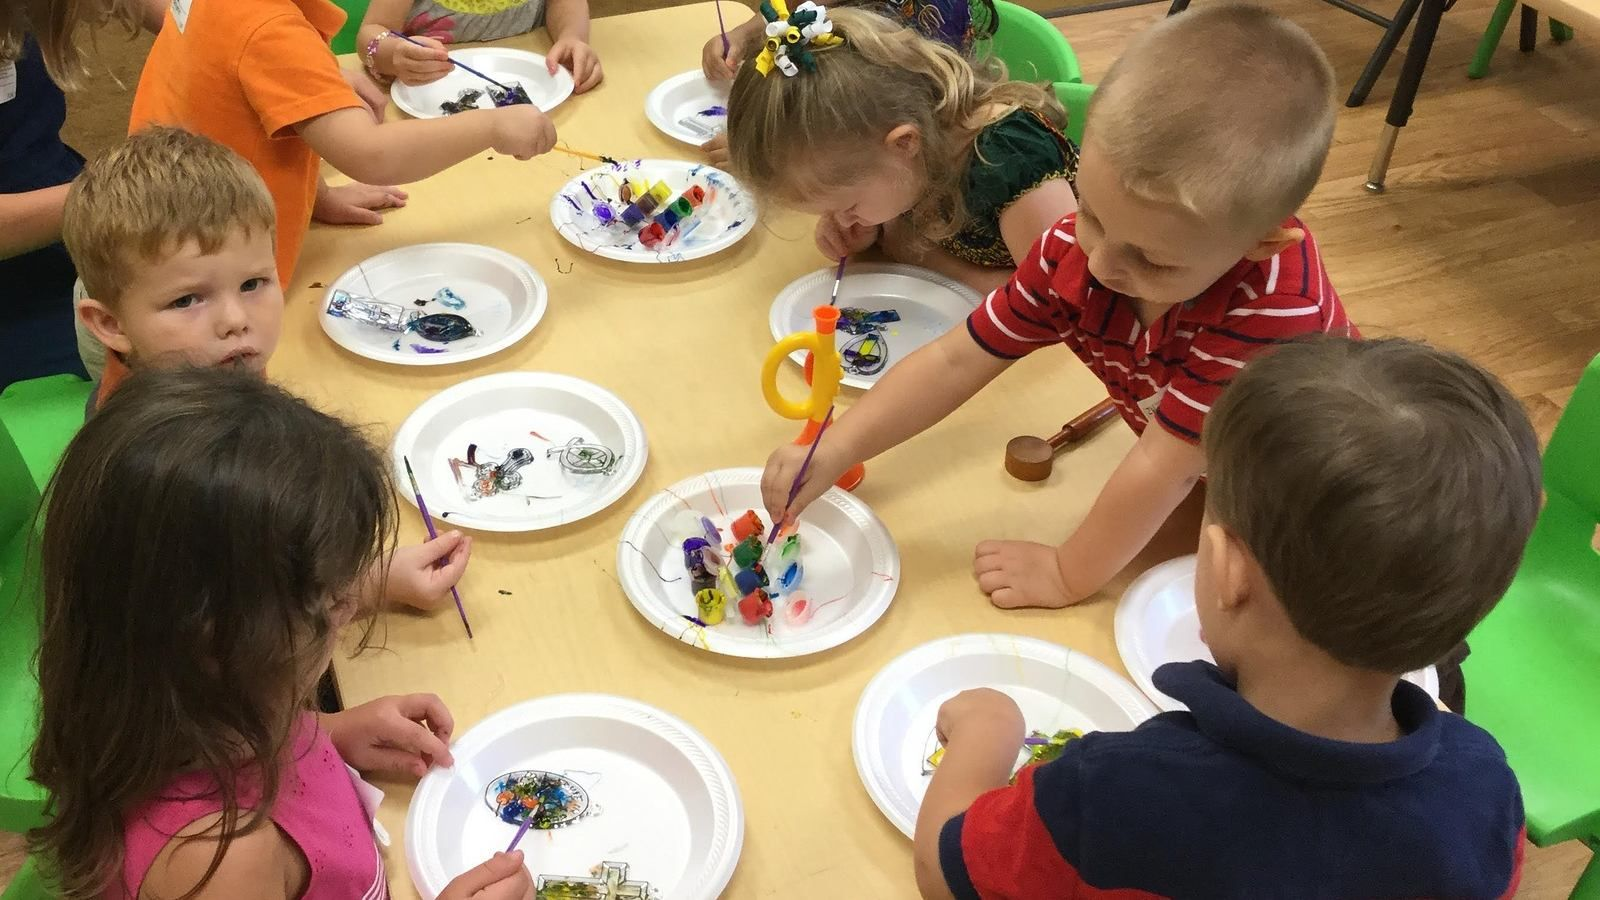 Preschool kids sitting on a table together doing craft banner image